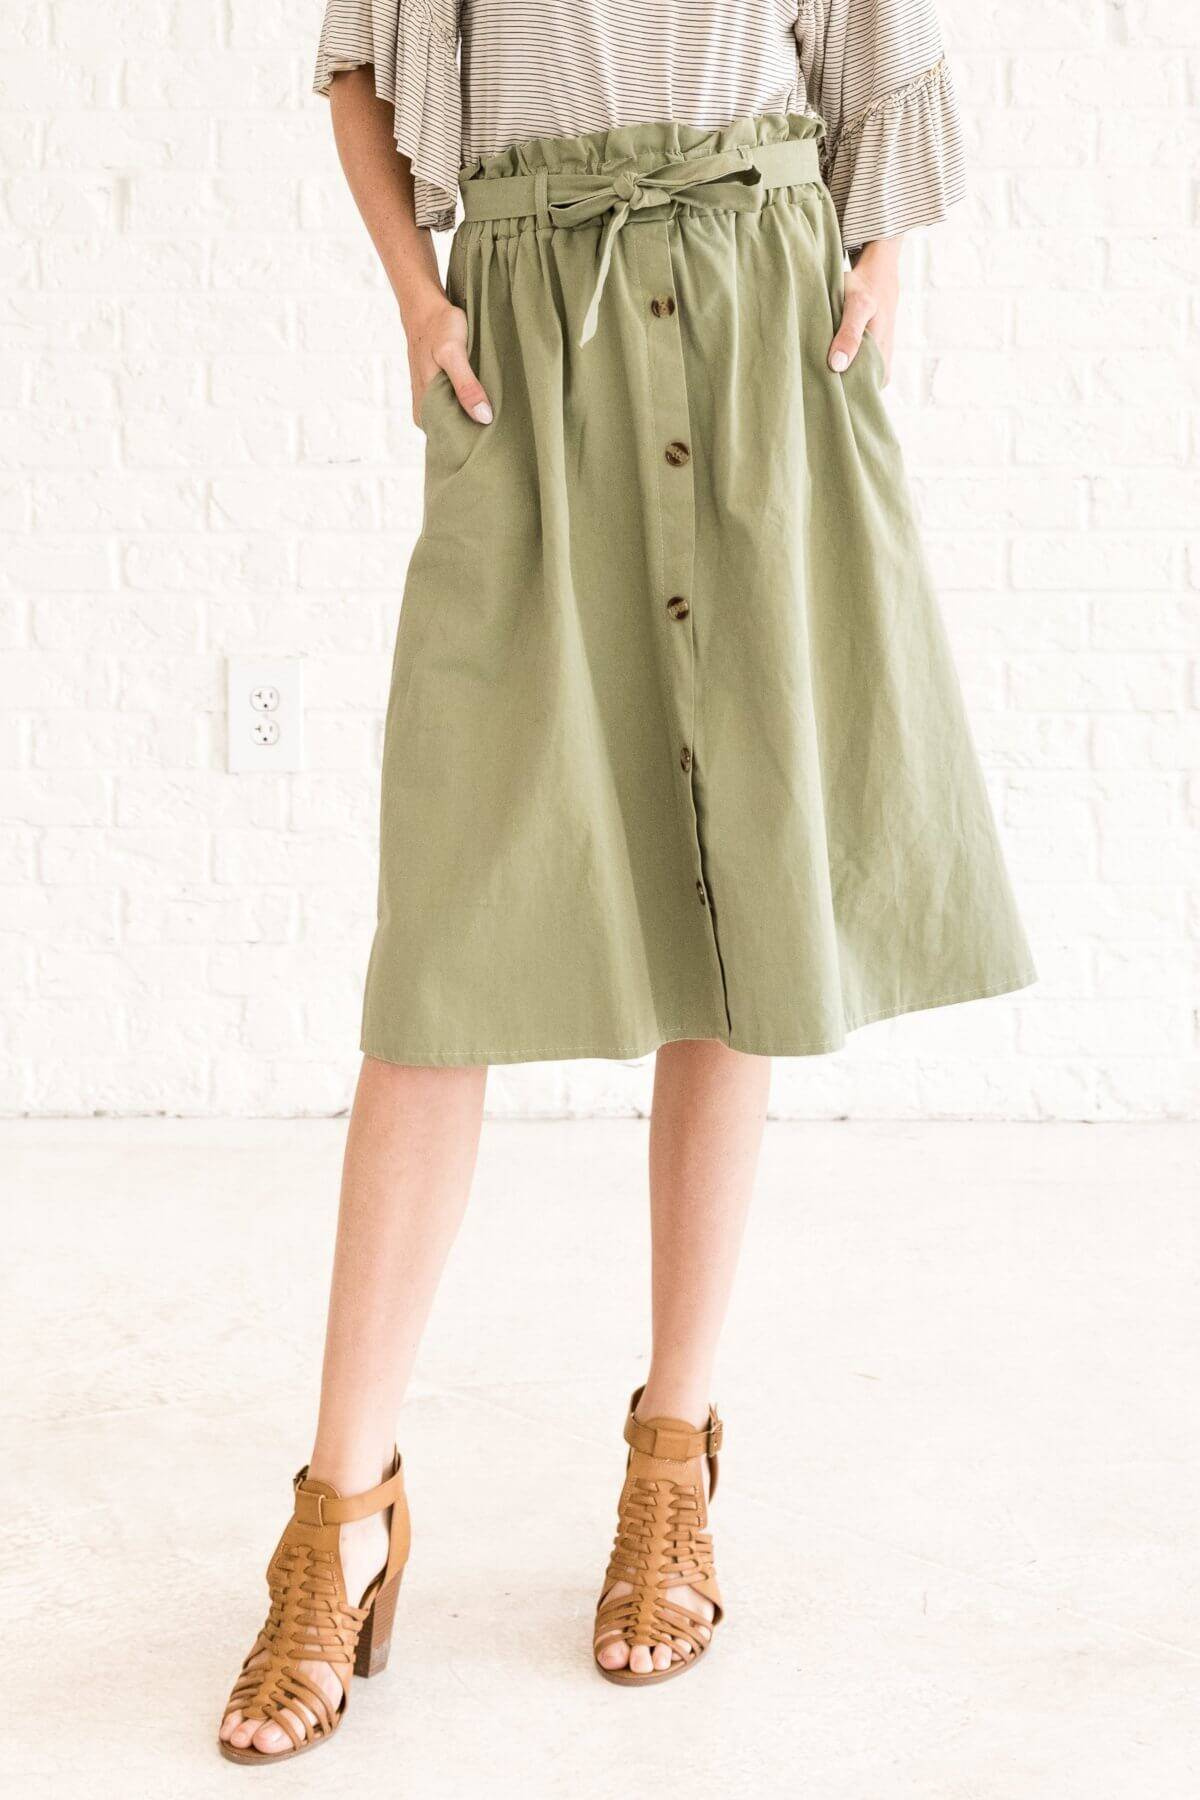 Bright Olive Green Paperbag Waist Midi Skirt with Button Up Front Business Casual for Women